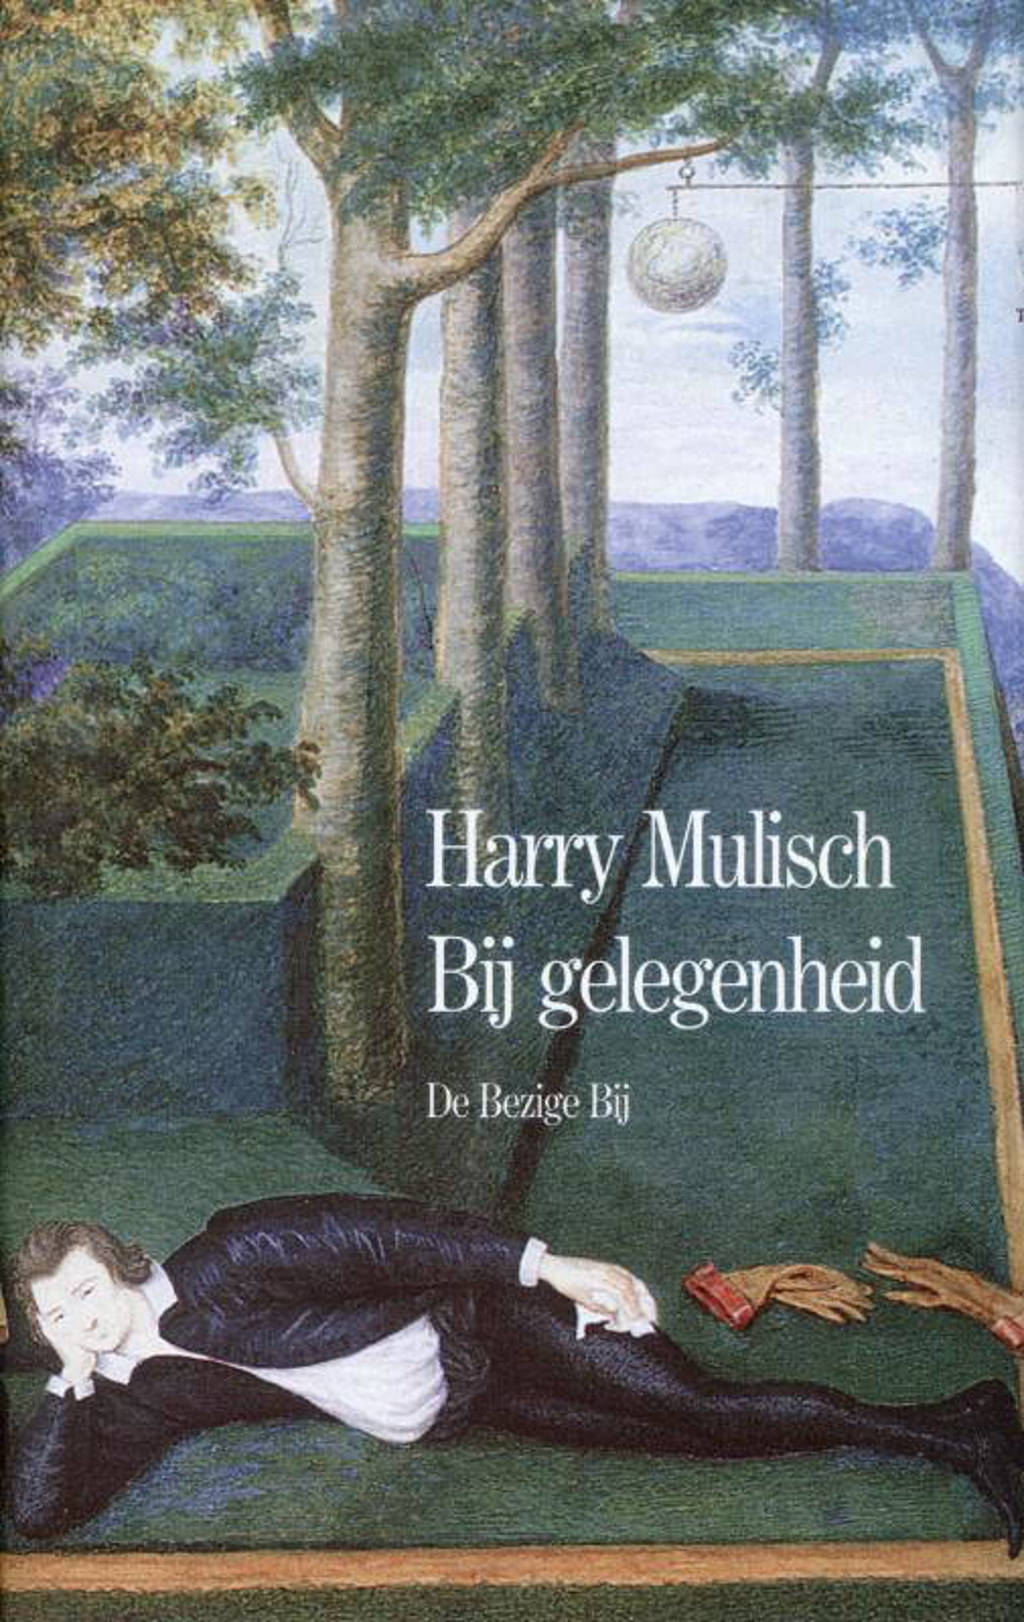 Bij gelegenheid - Harry Mulisch